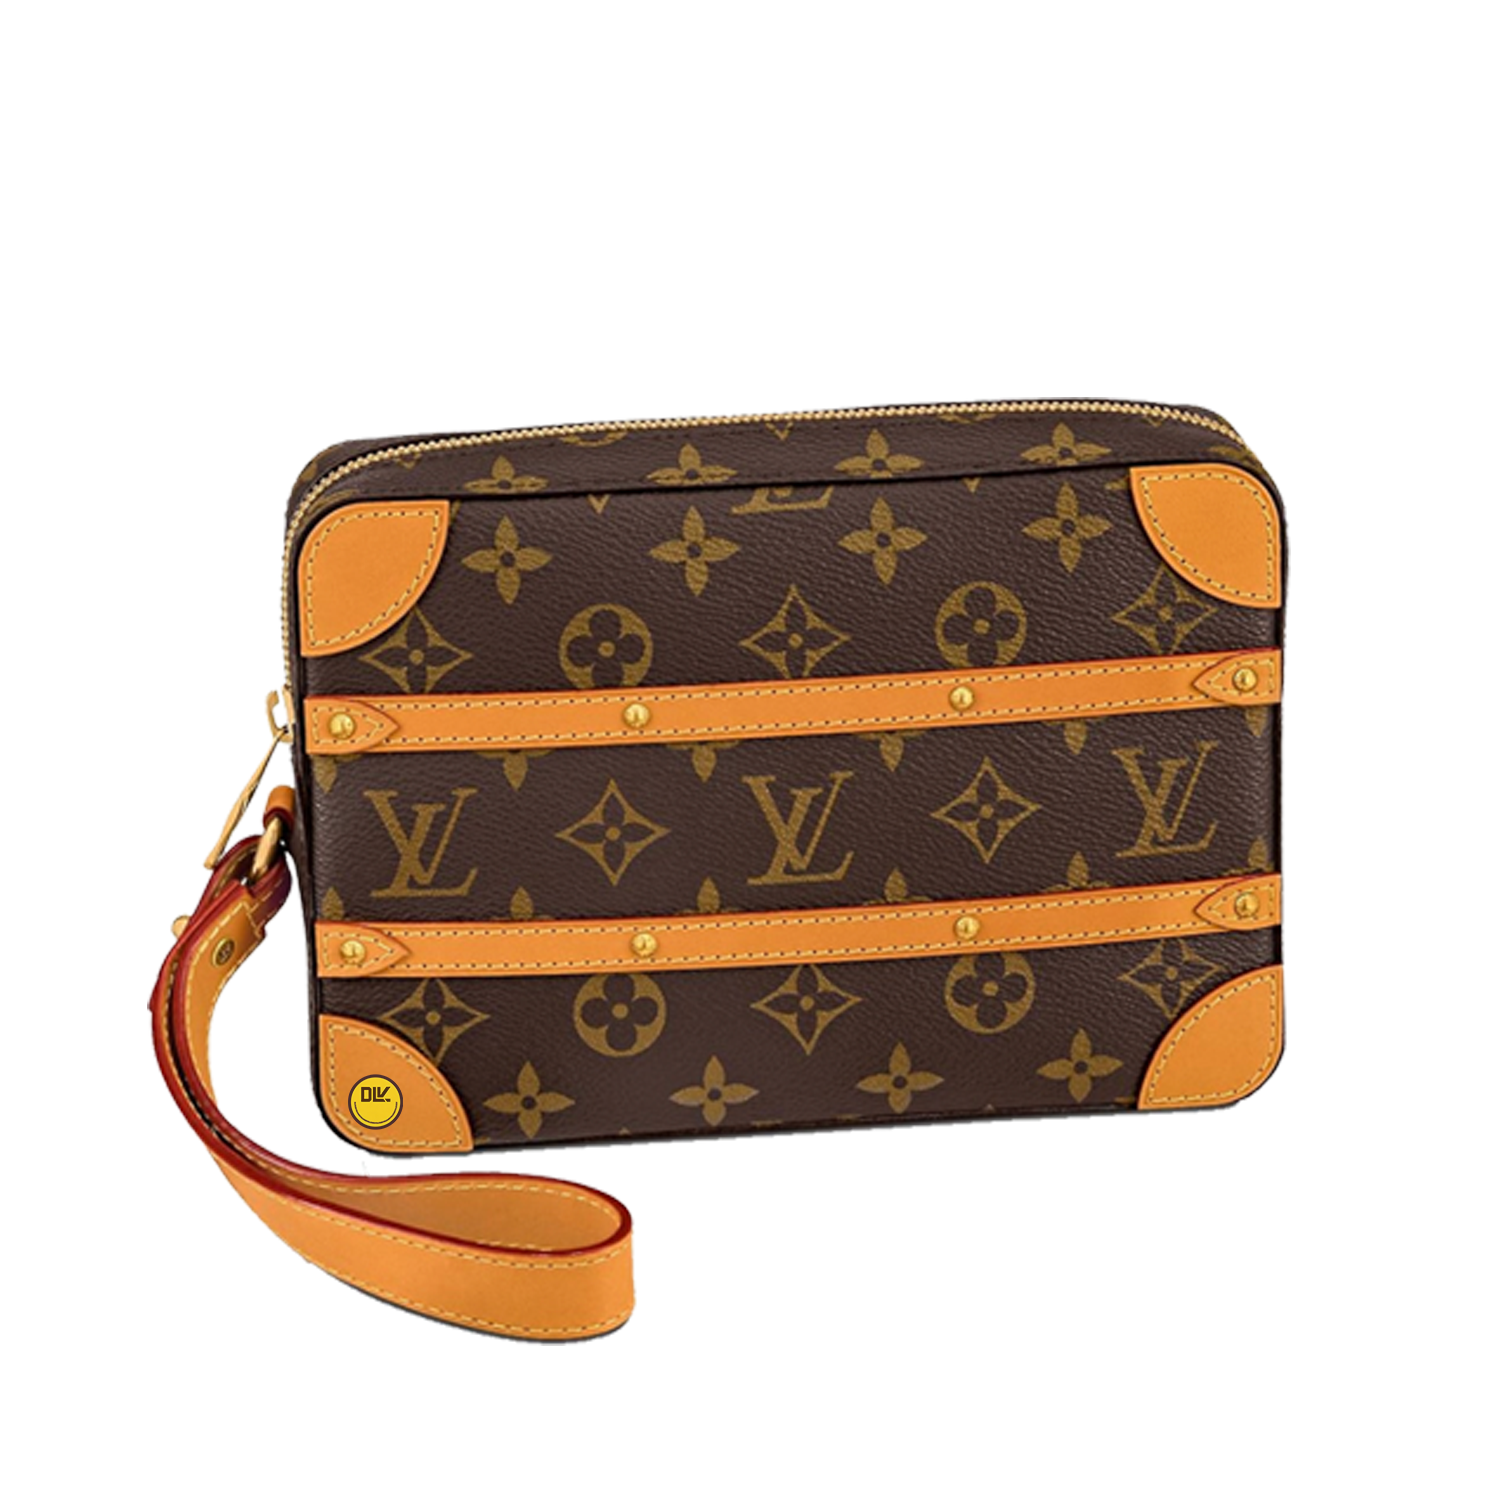 SOFT TRUNK POUCH - €950 $1410M44779MONOGRAM LEGACY